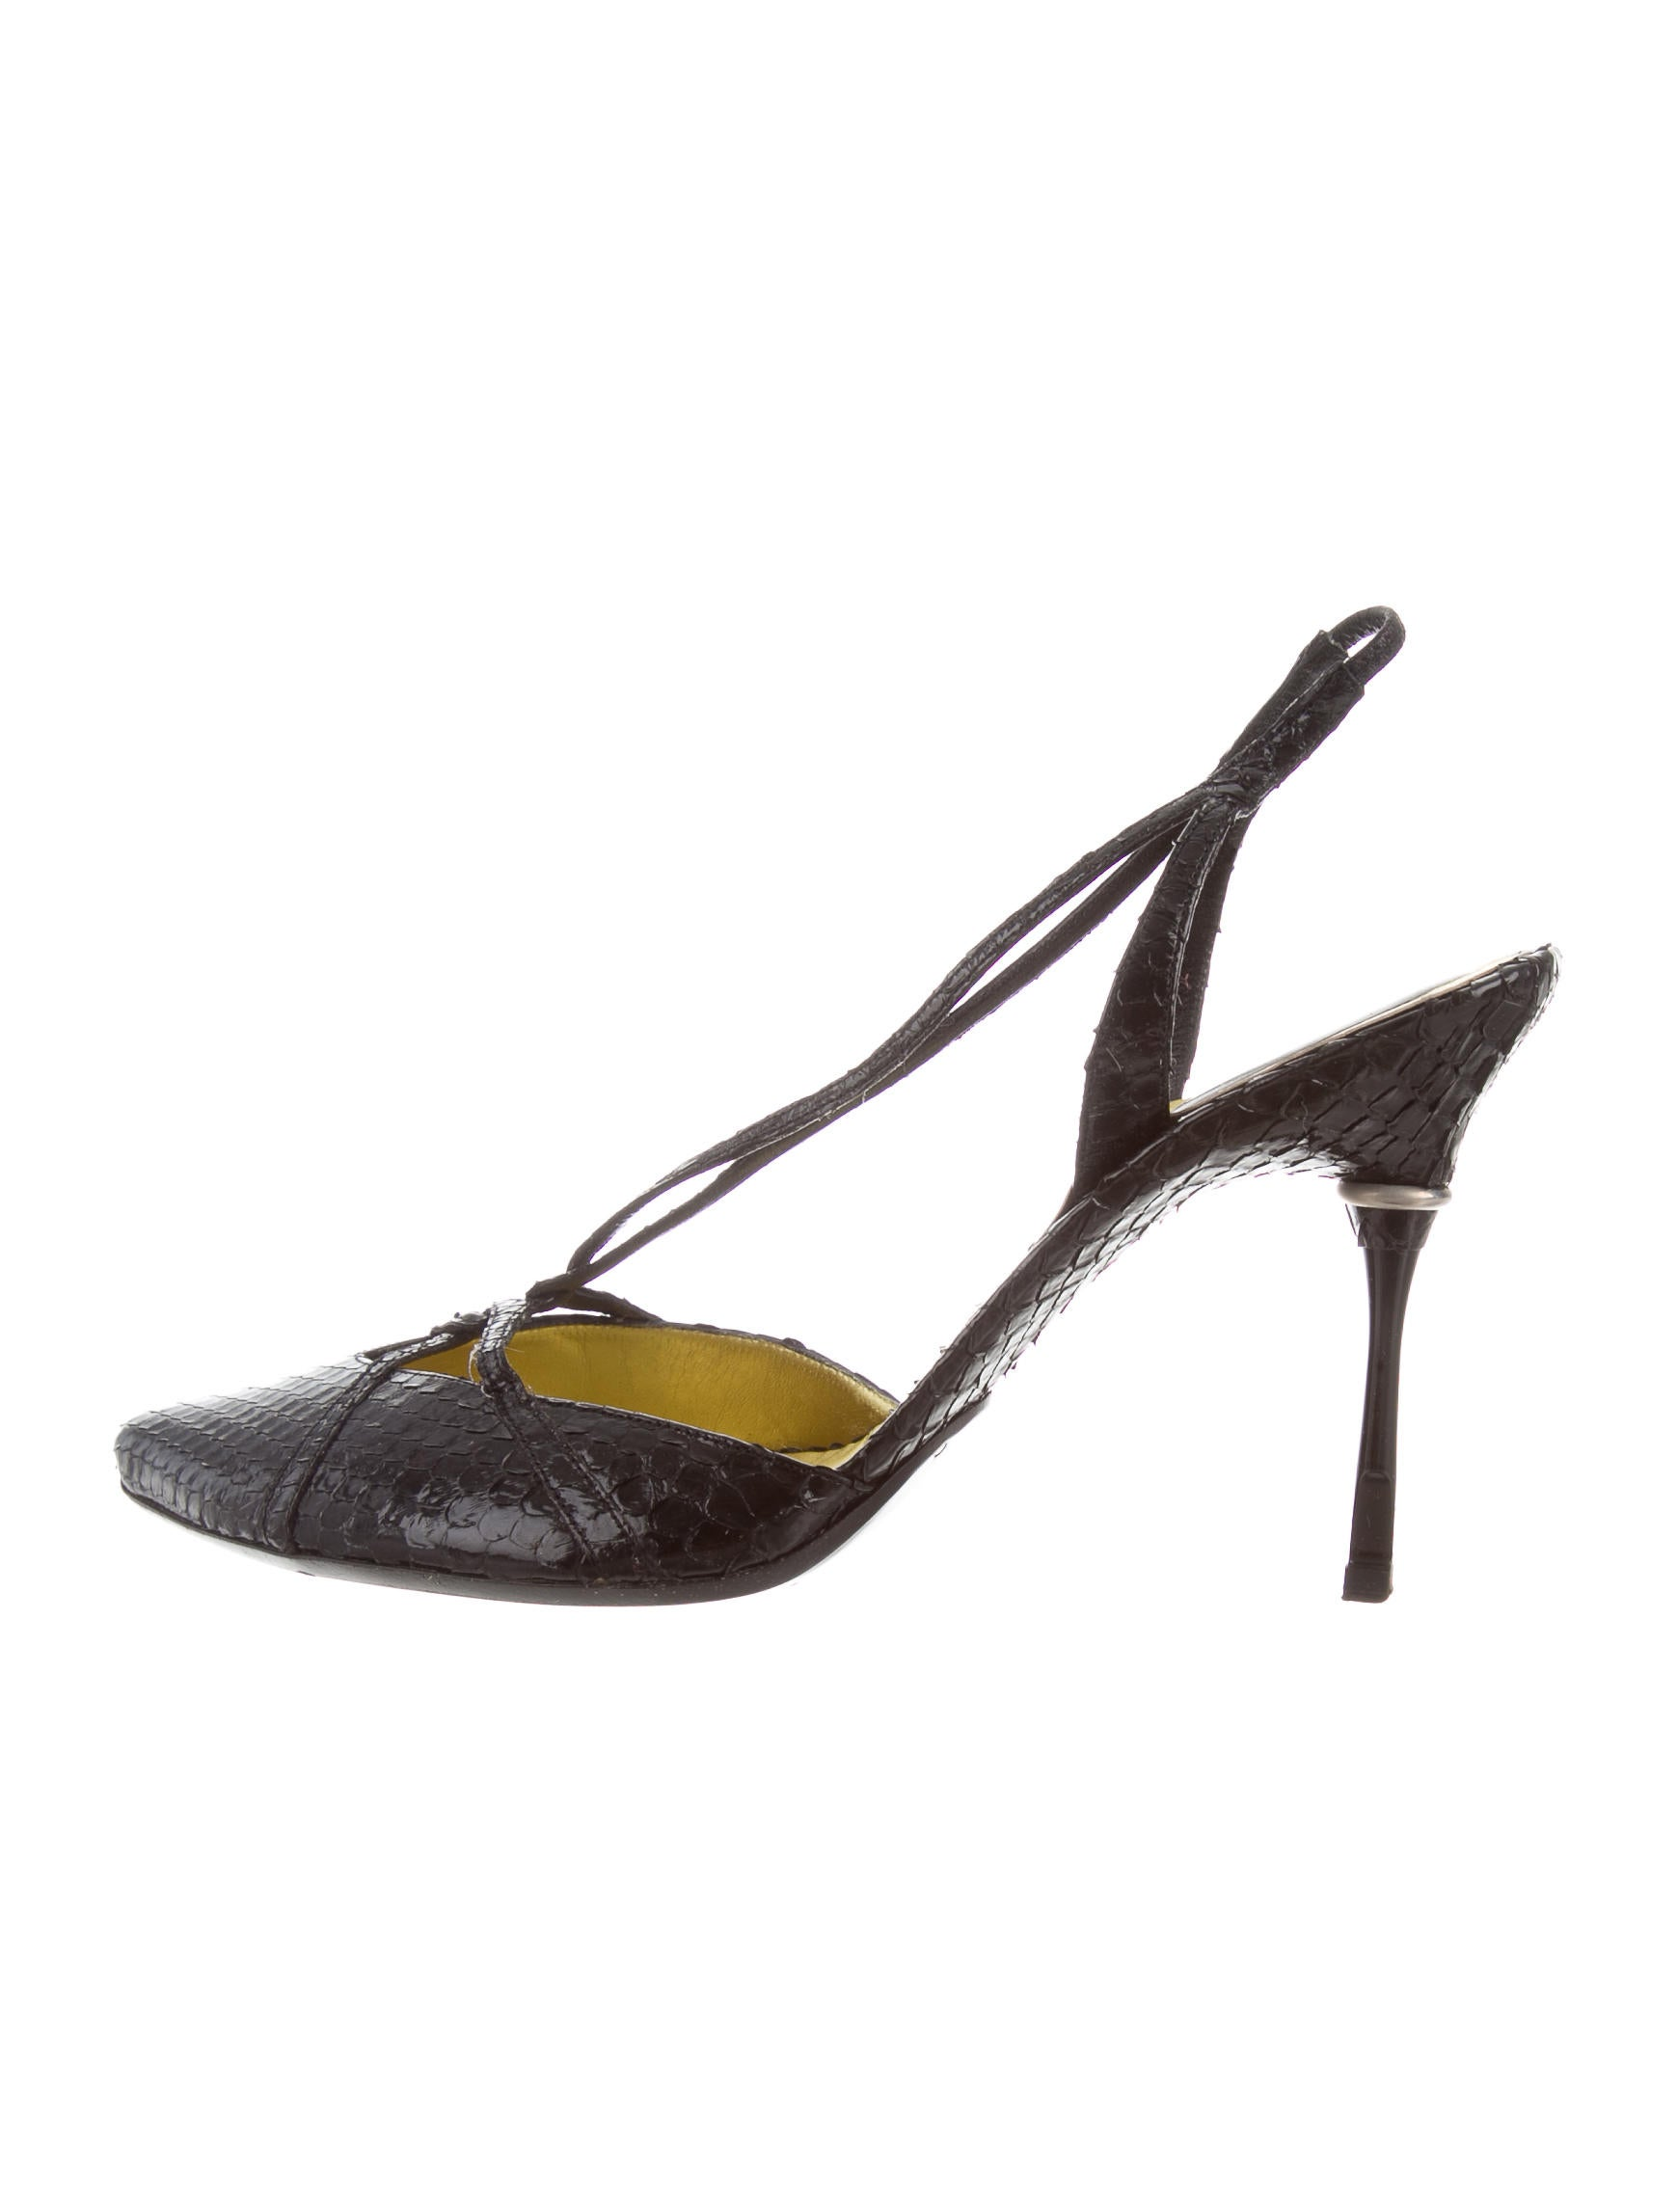 Bottega Veneta Snakeskin Pointed-Toe Pumps outlet 2014 unisex geniue stockist cheap price free shipping discount free shipping pre order iBgTCpsWO